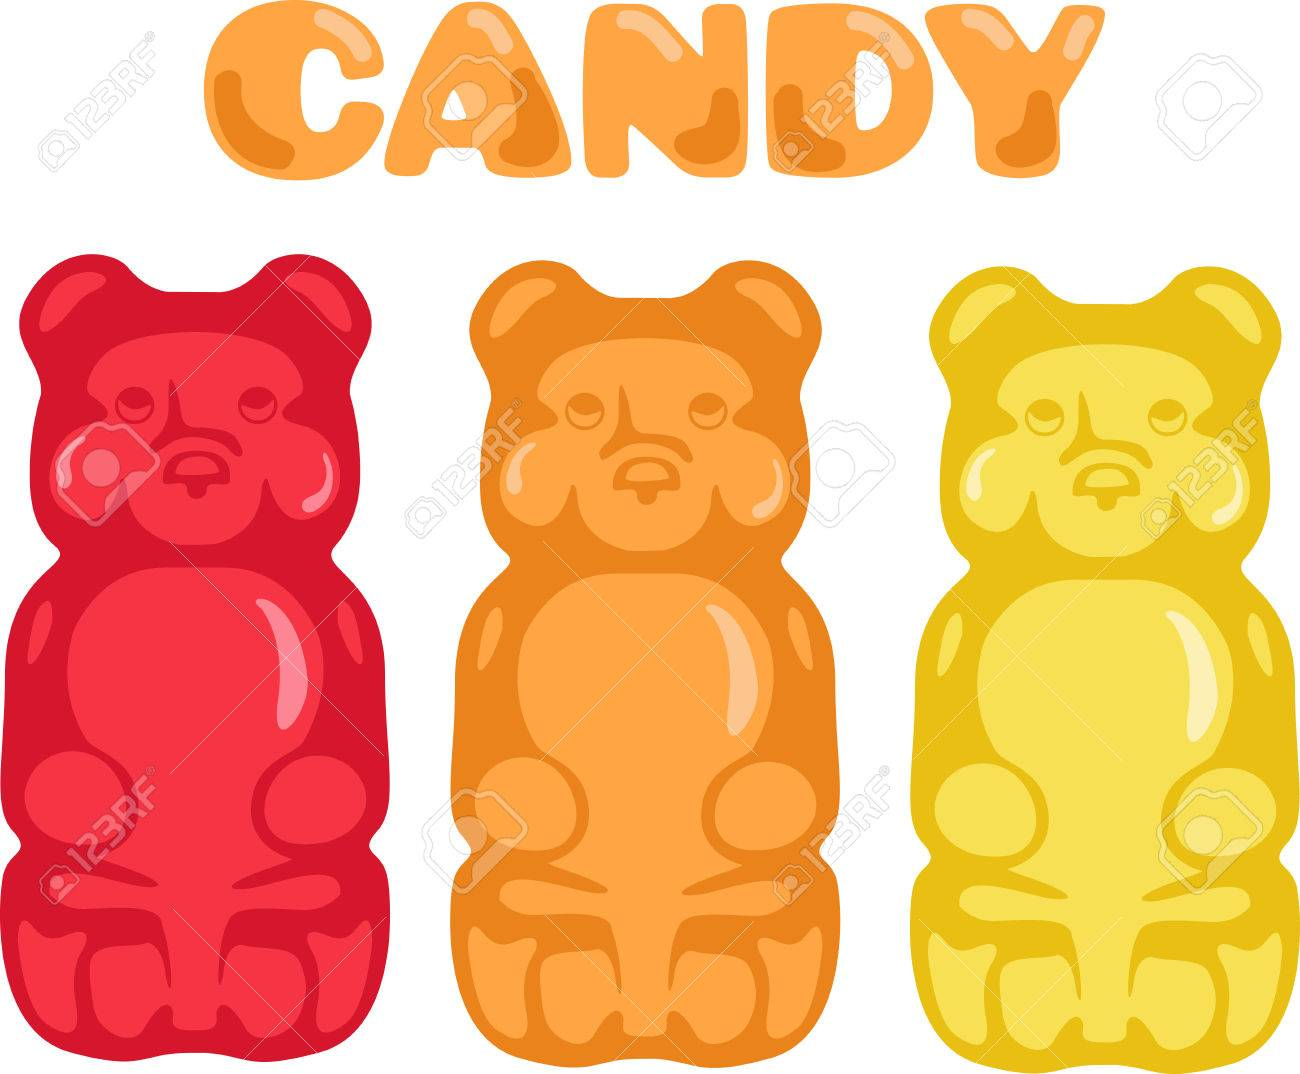 Gummy Bears Stock Illustrations, Cliparts And Royalty Free Gummy ...